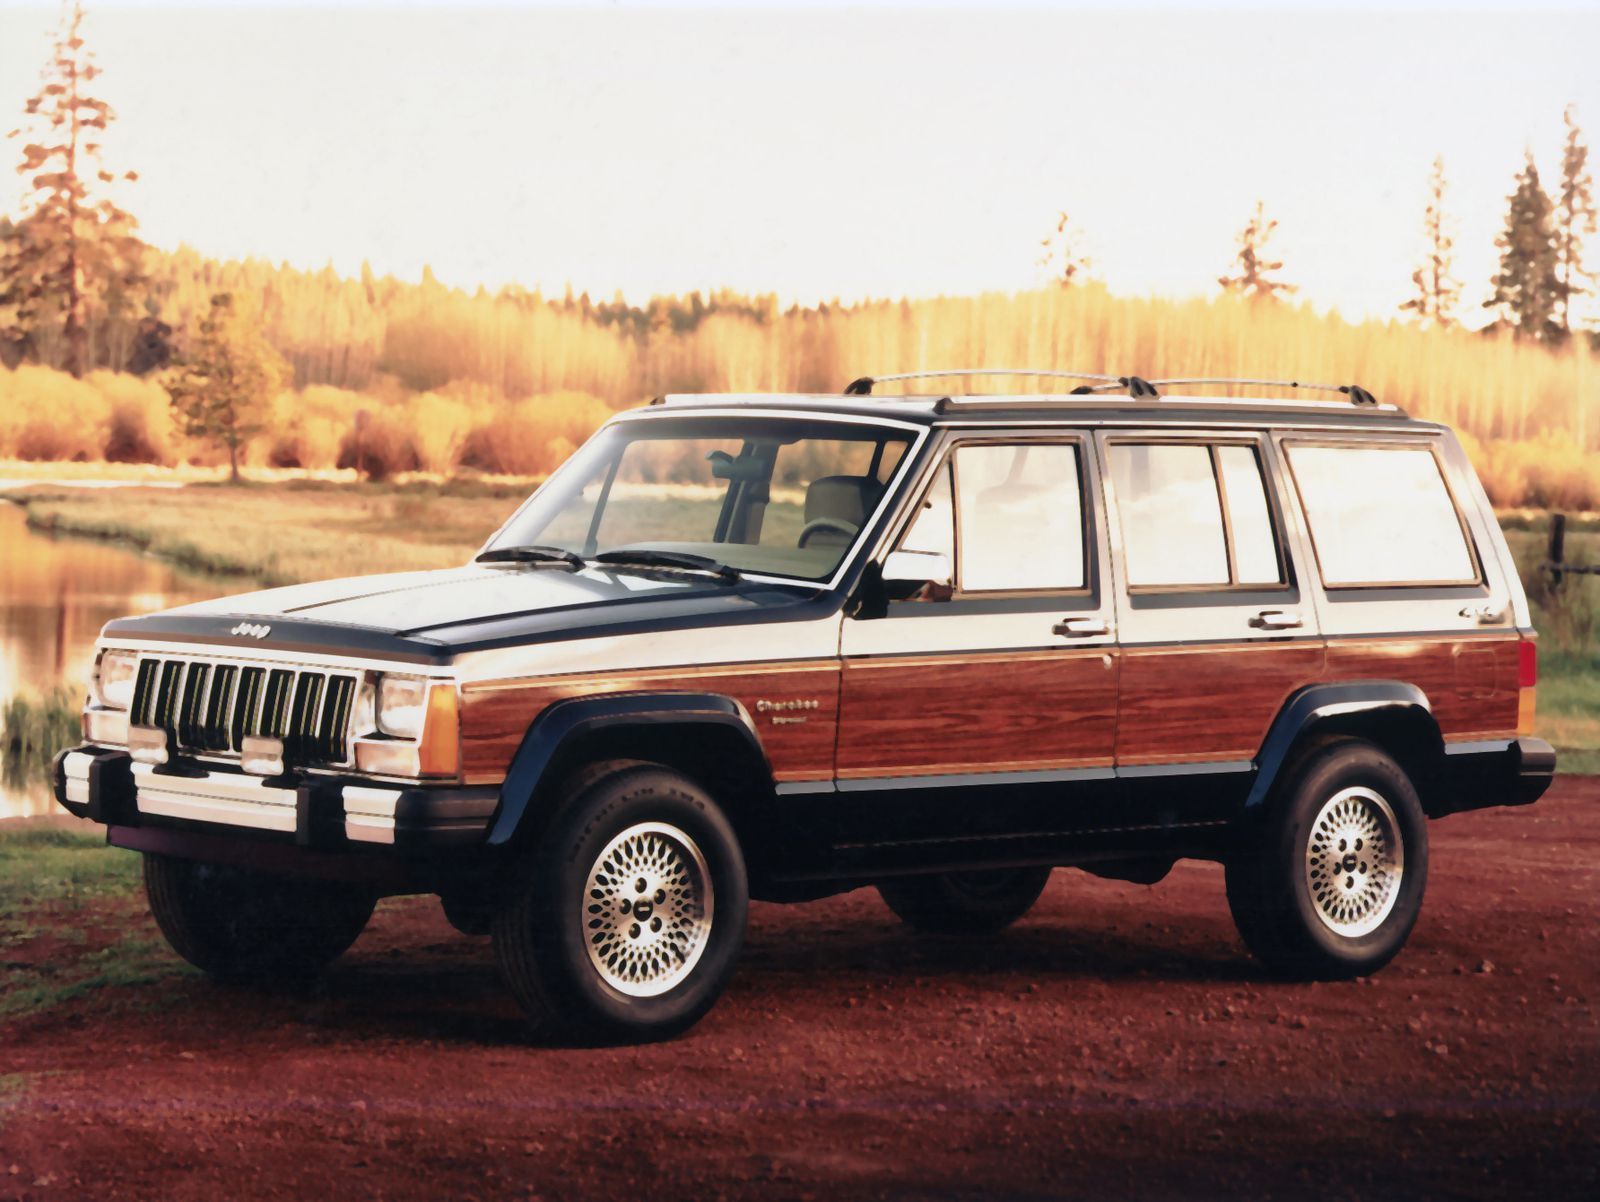 I M The Reason Why Old Jeep Cherokees Are So Expensive Today Old Jeep Jeep Cherokee Xj Jeep Cherokee